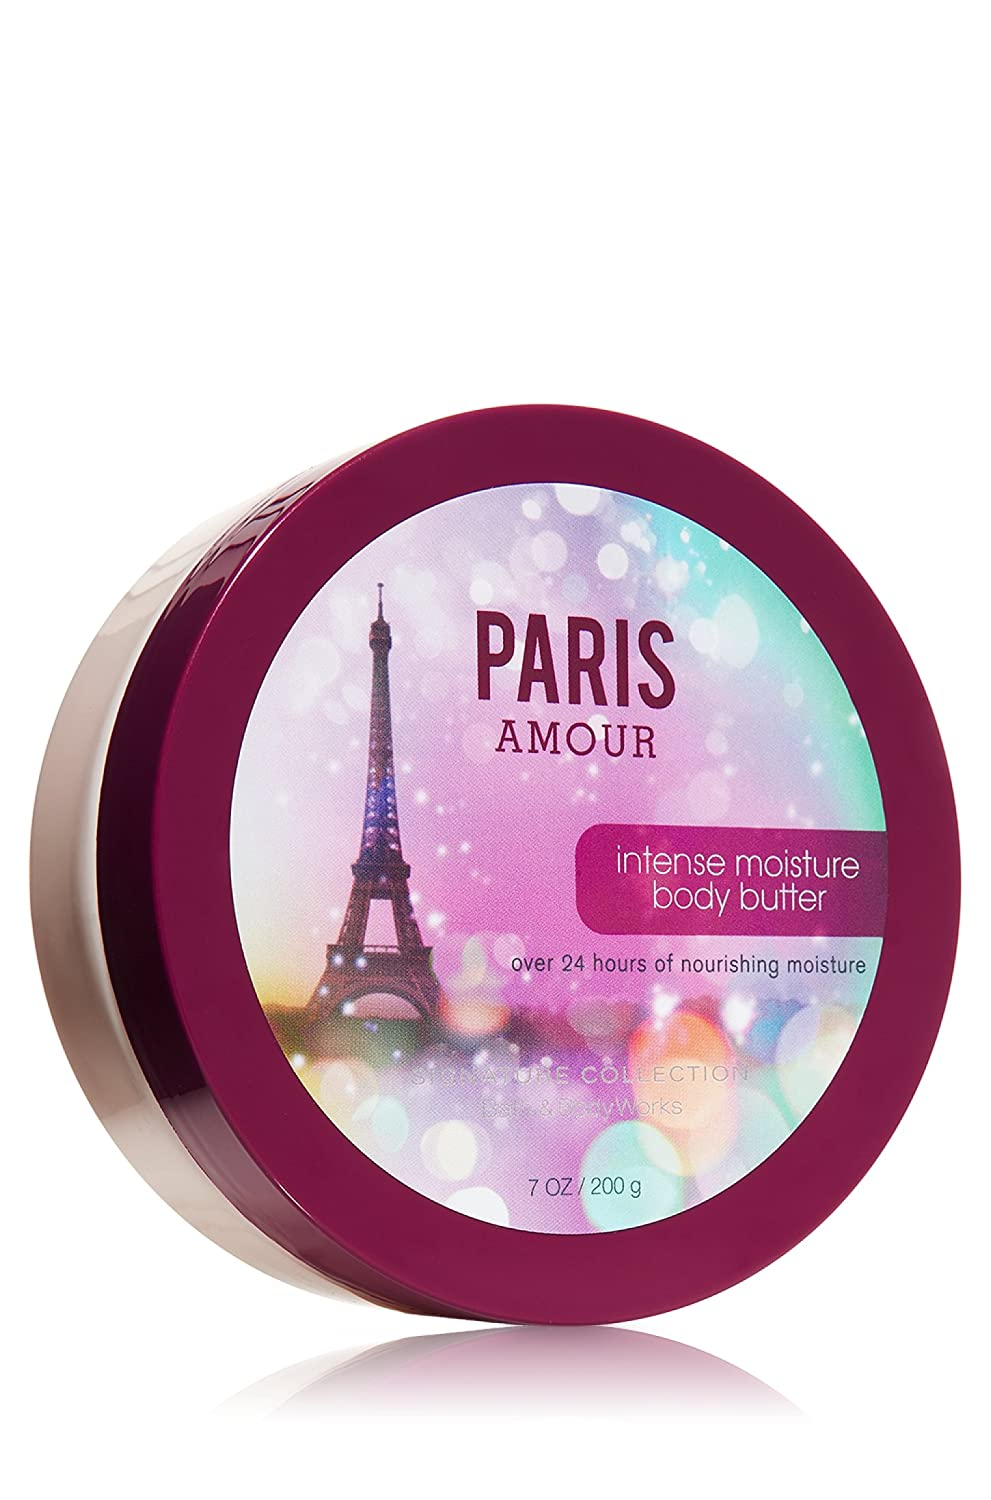 PARIS AMOUR Intense Moisture 24 Hour Body Butter from Bath & Body Works